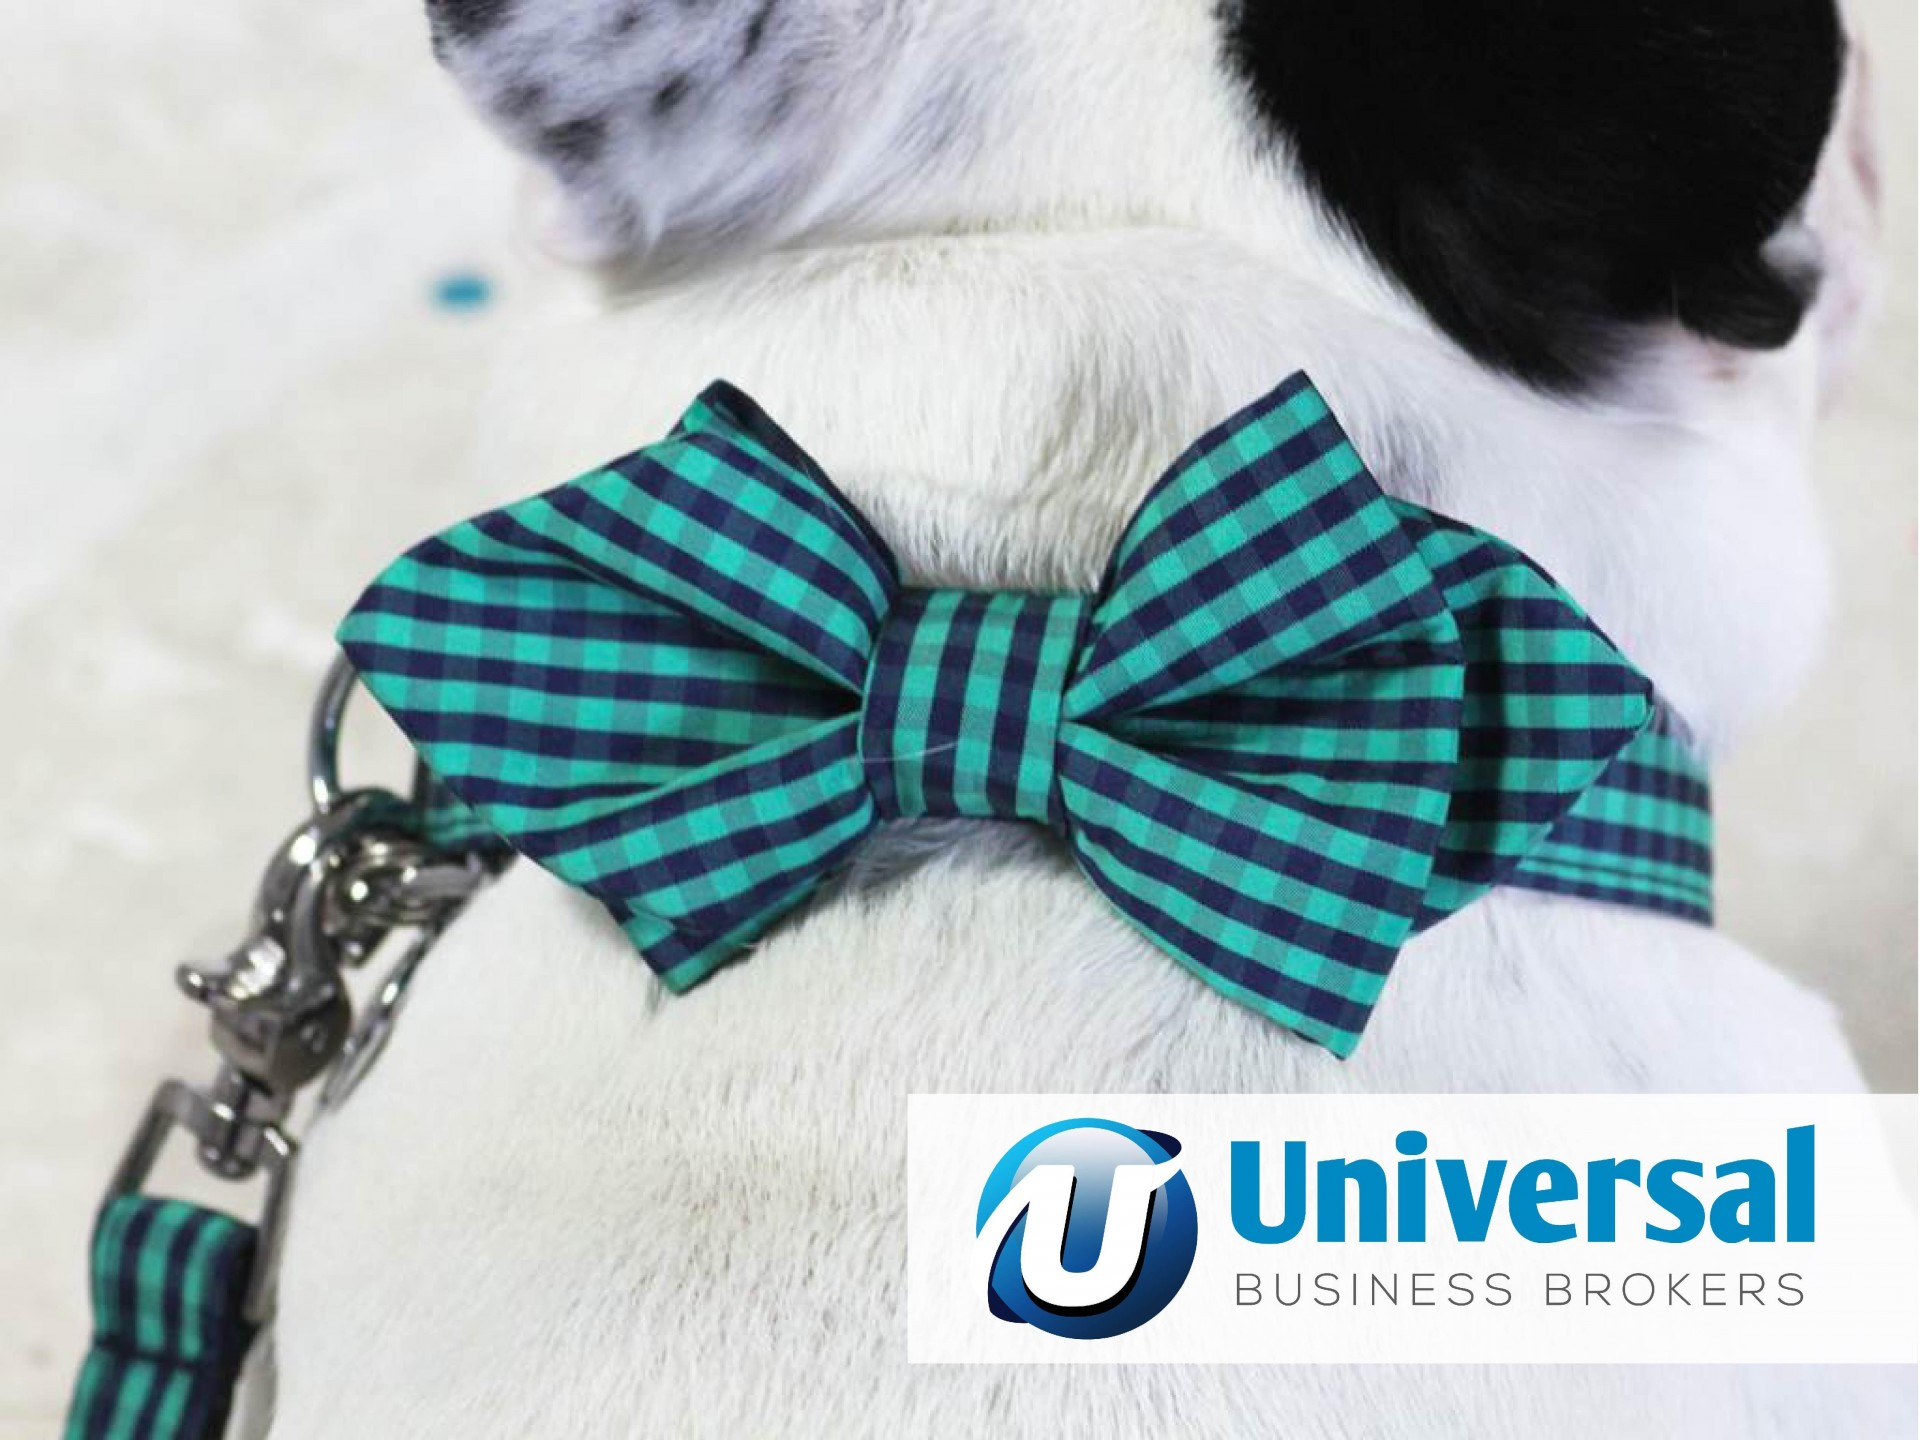 Designer Pet Accessories Business for Sale Sydney